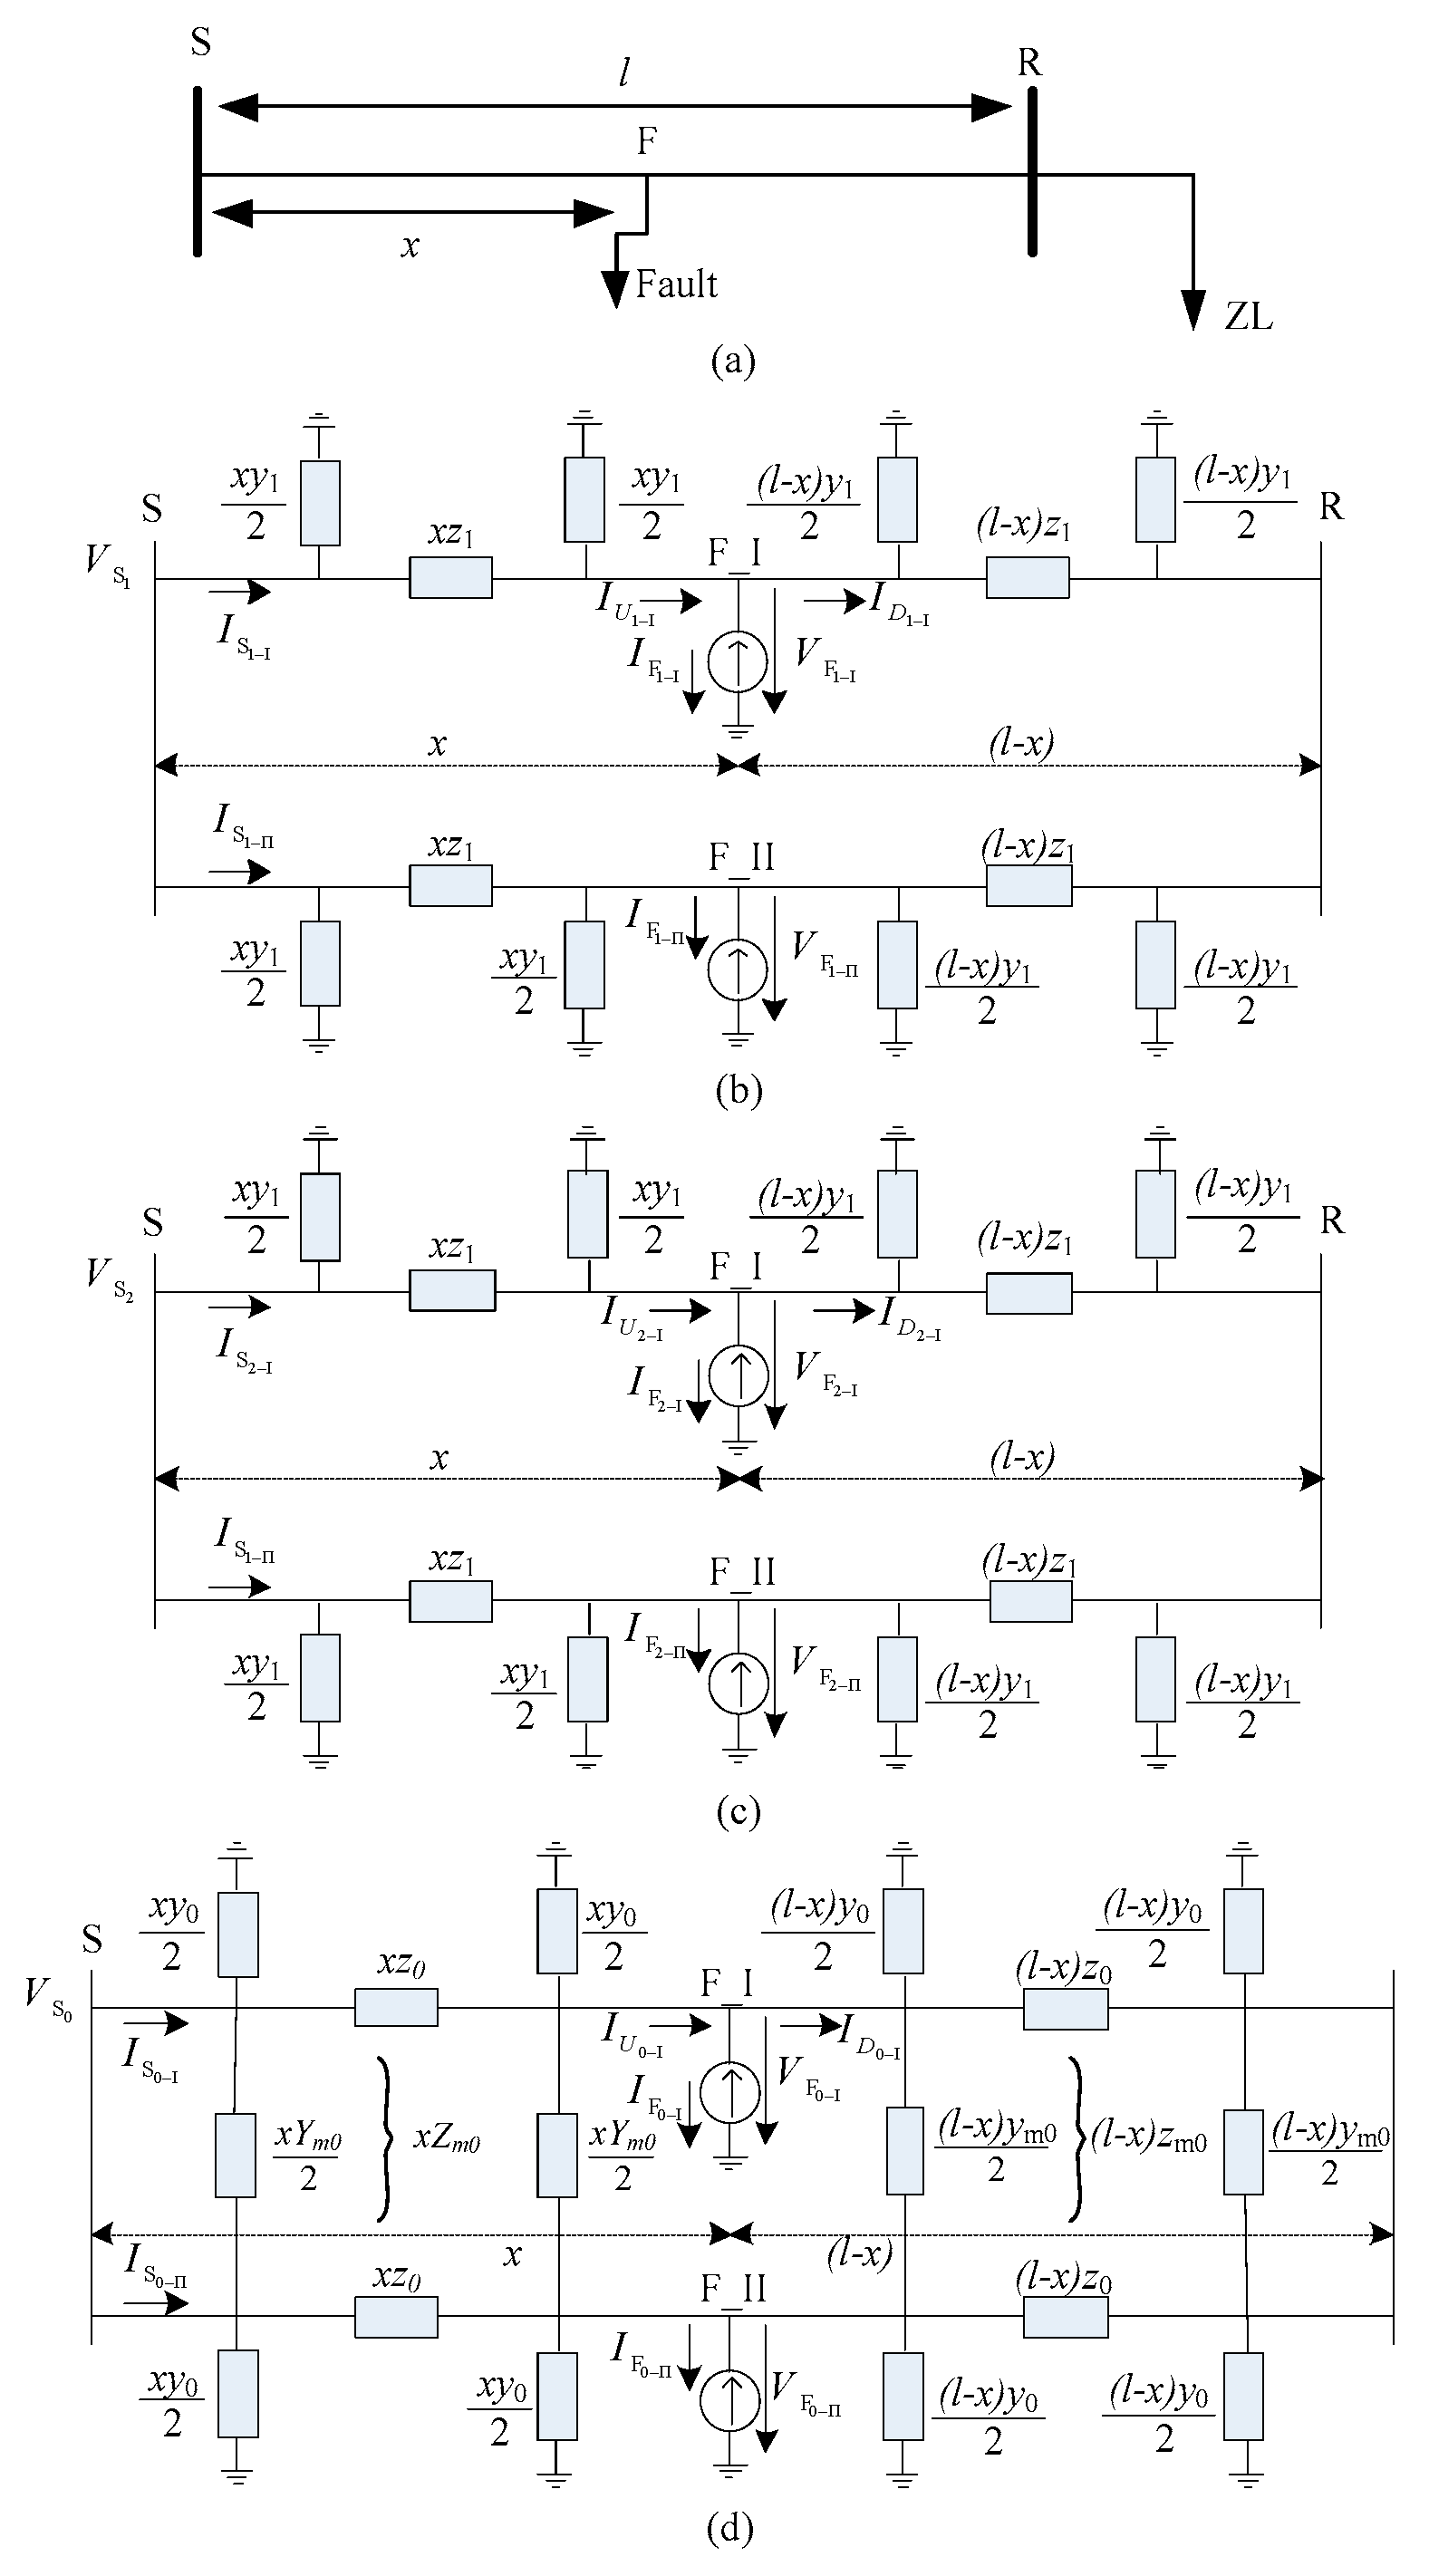 Applied Sciences | Free Full-Text | Fault Location in Double Circuit